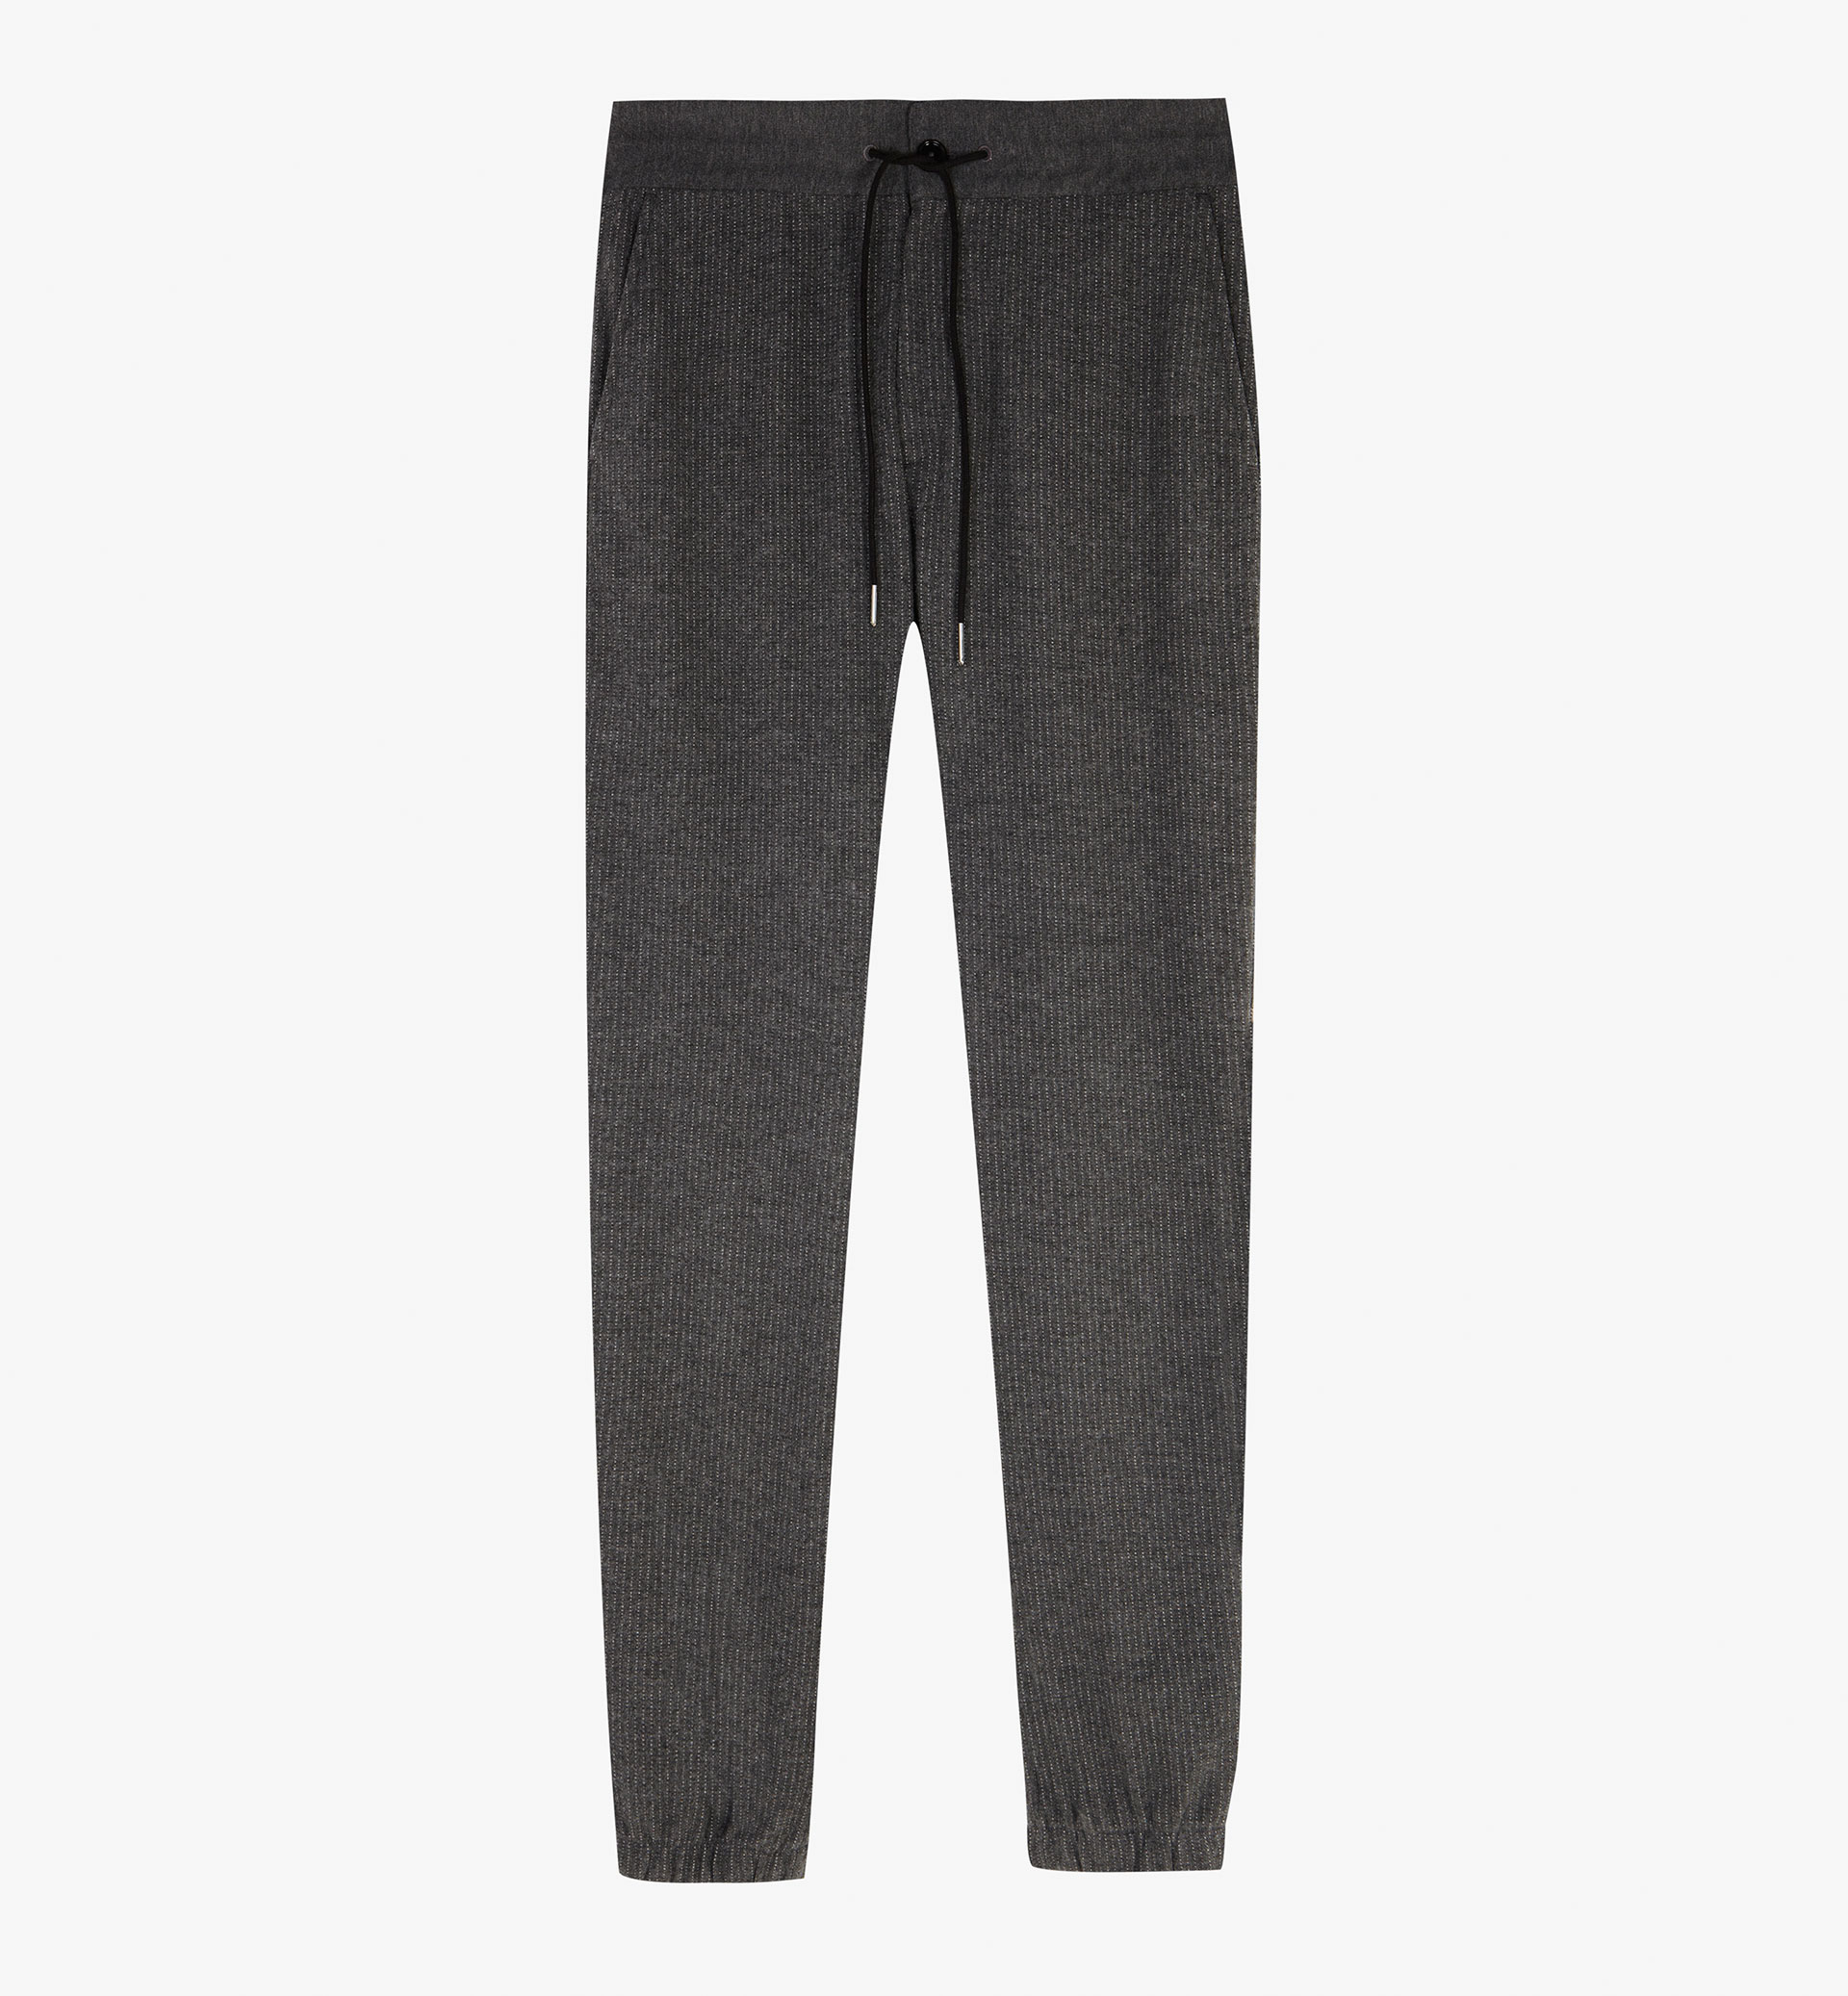 SOFT STRIPED JOGGING TROUSERS